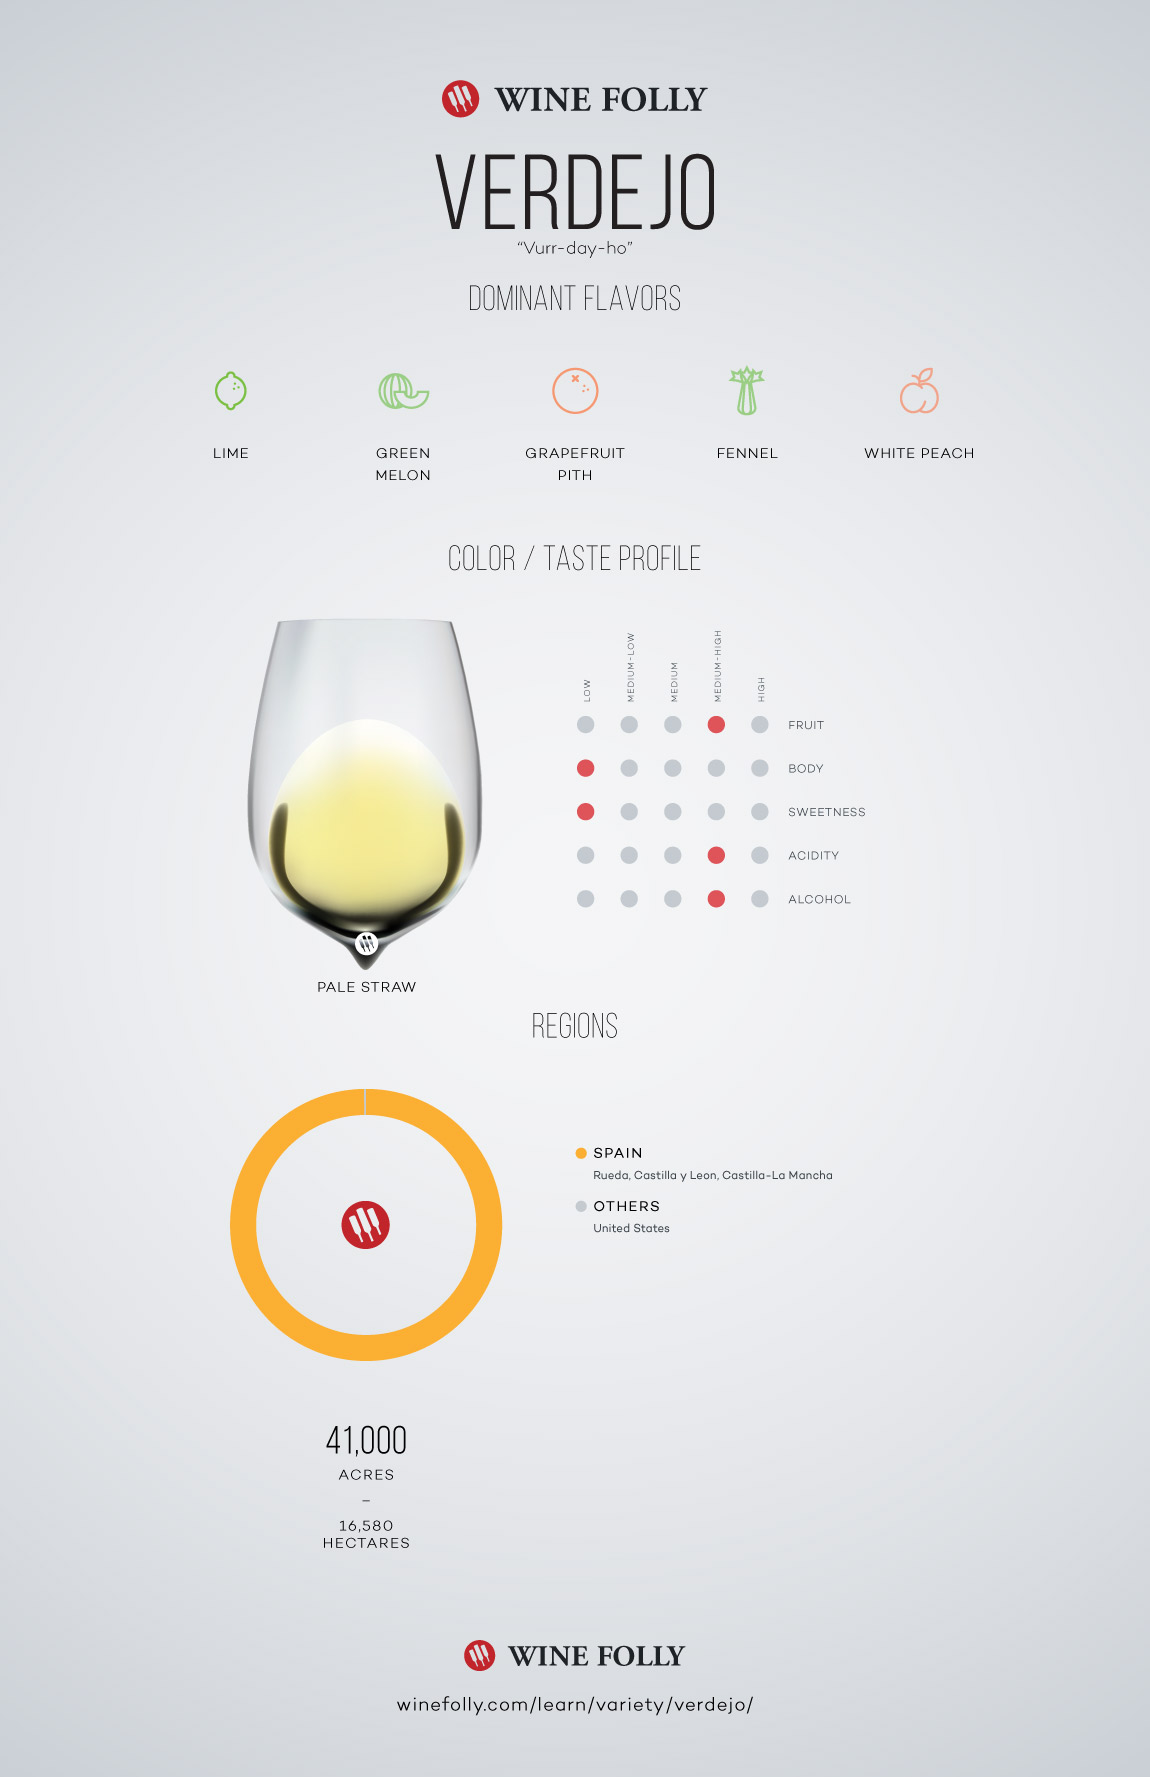 Verdejo-taste-profile-wine-folly